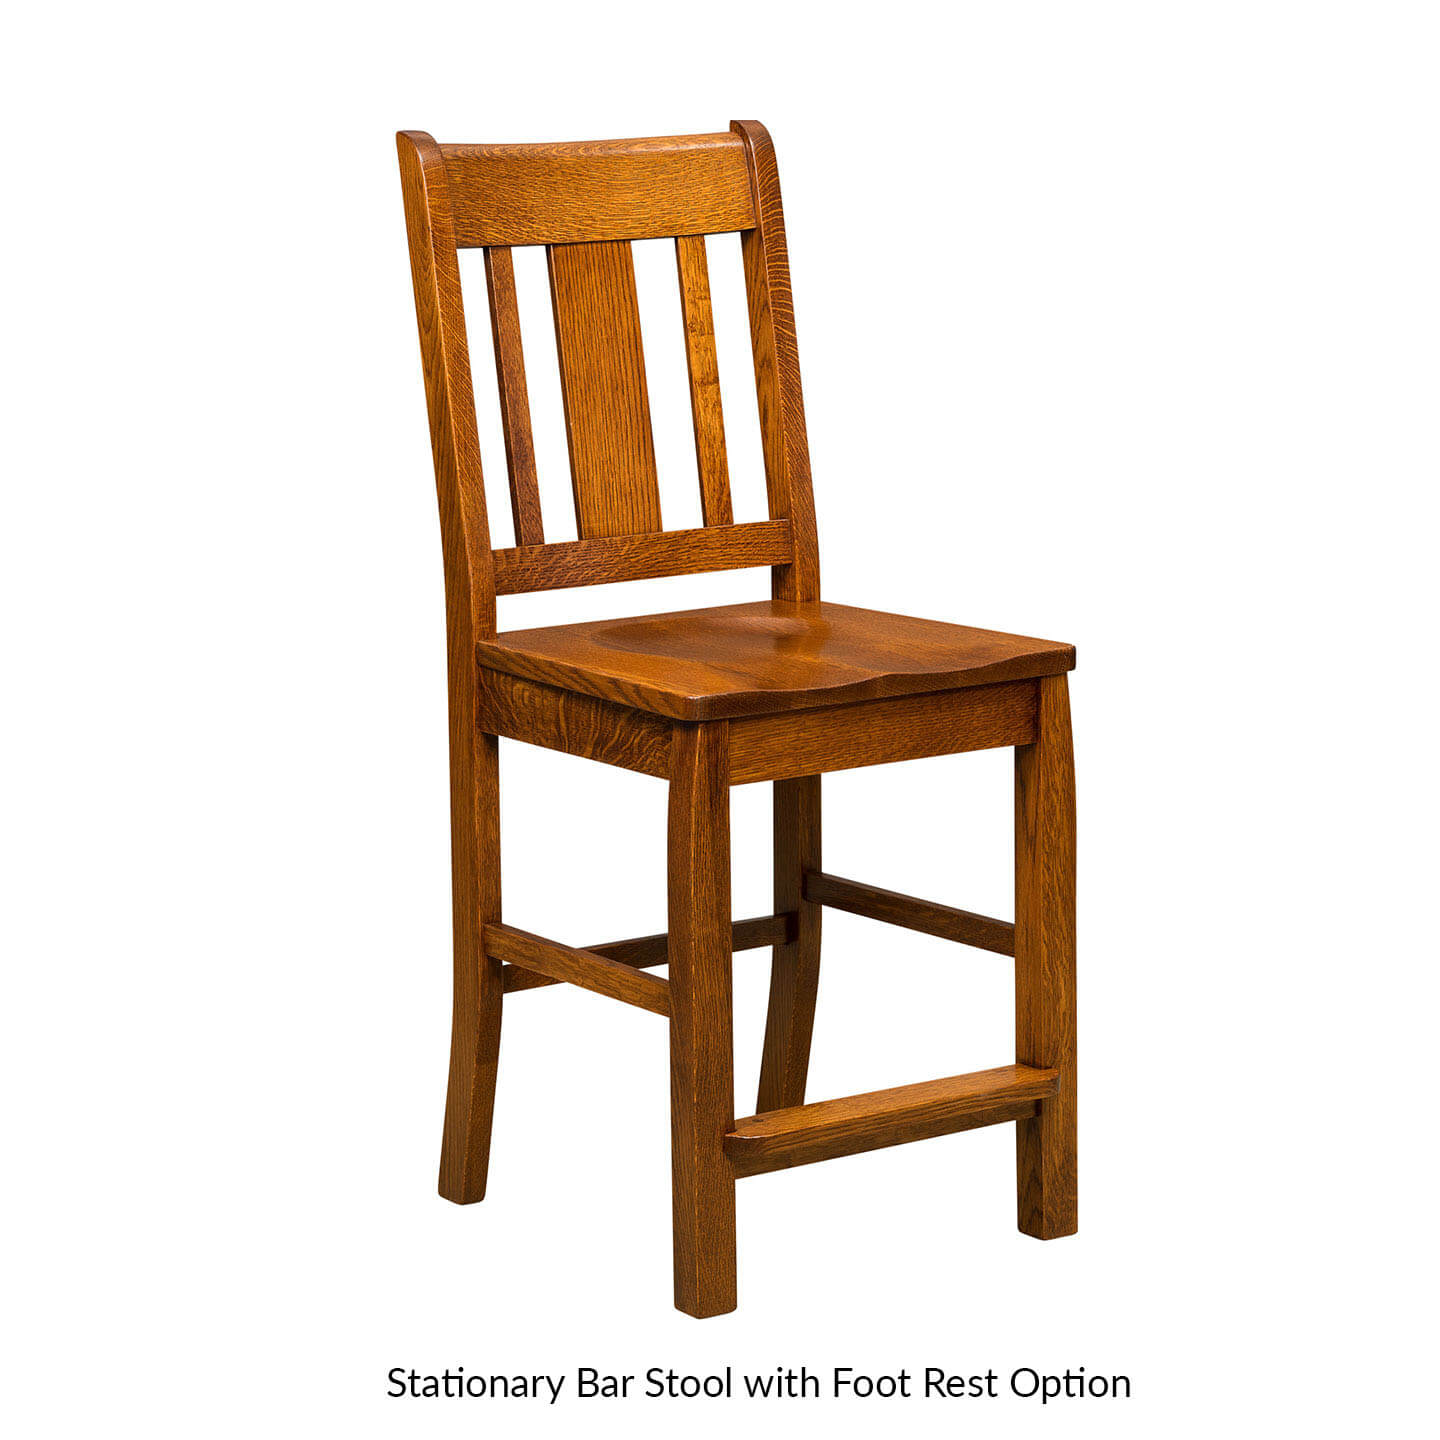 9.1-stationary-bar-stool-with-foot-rest-option.jpg